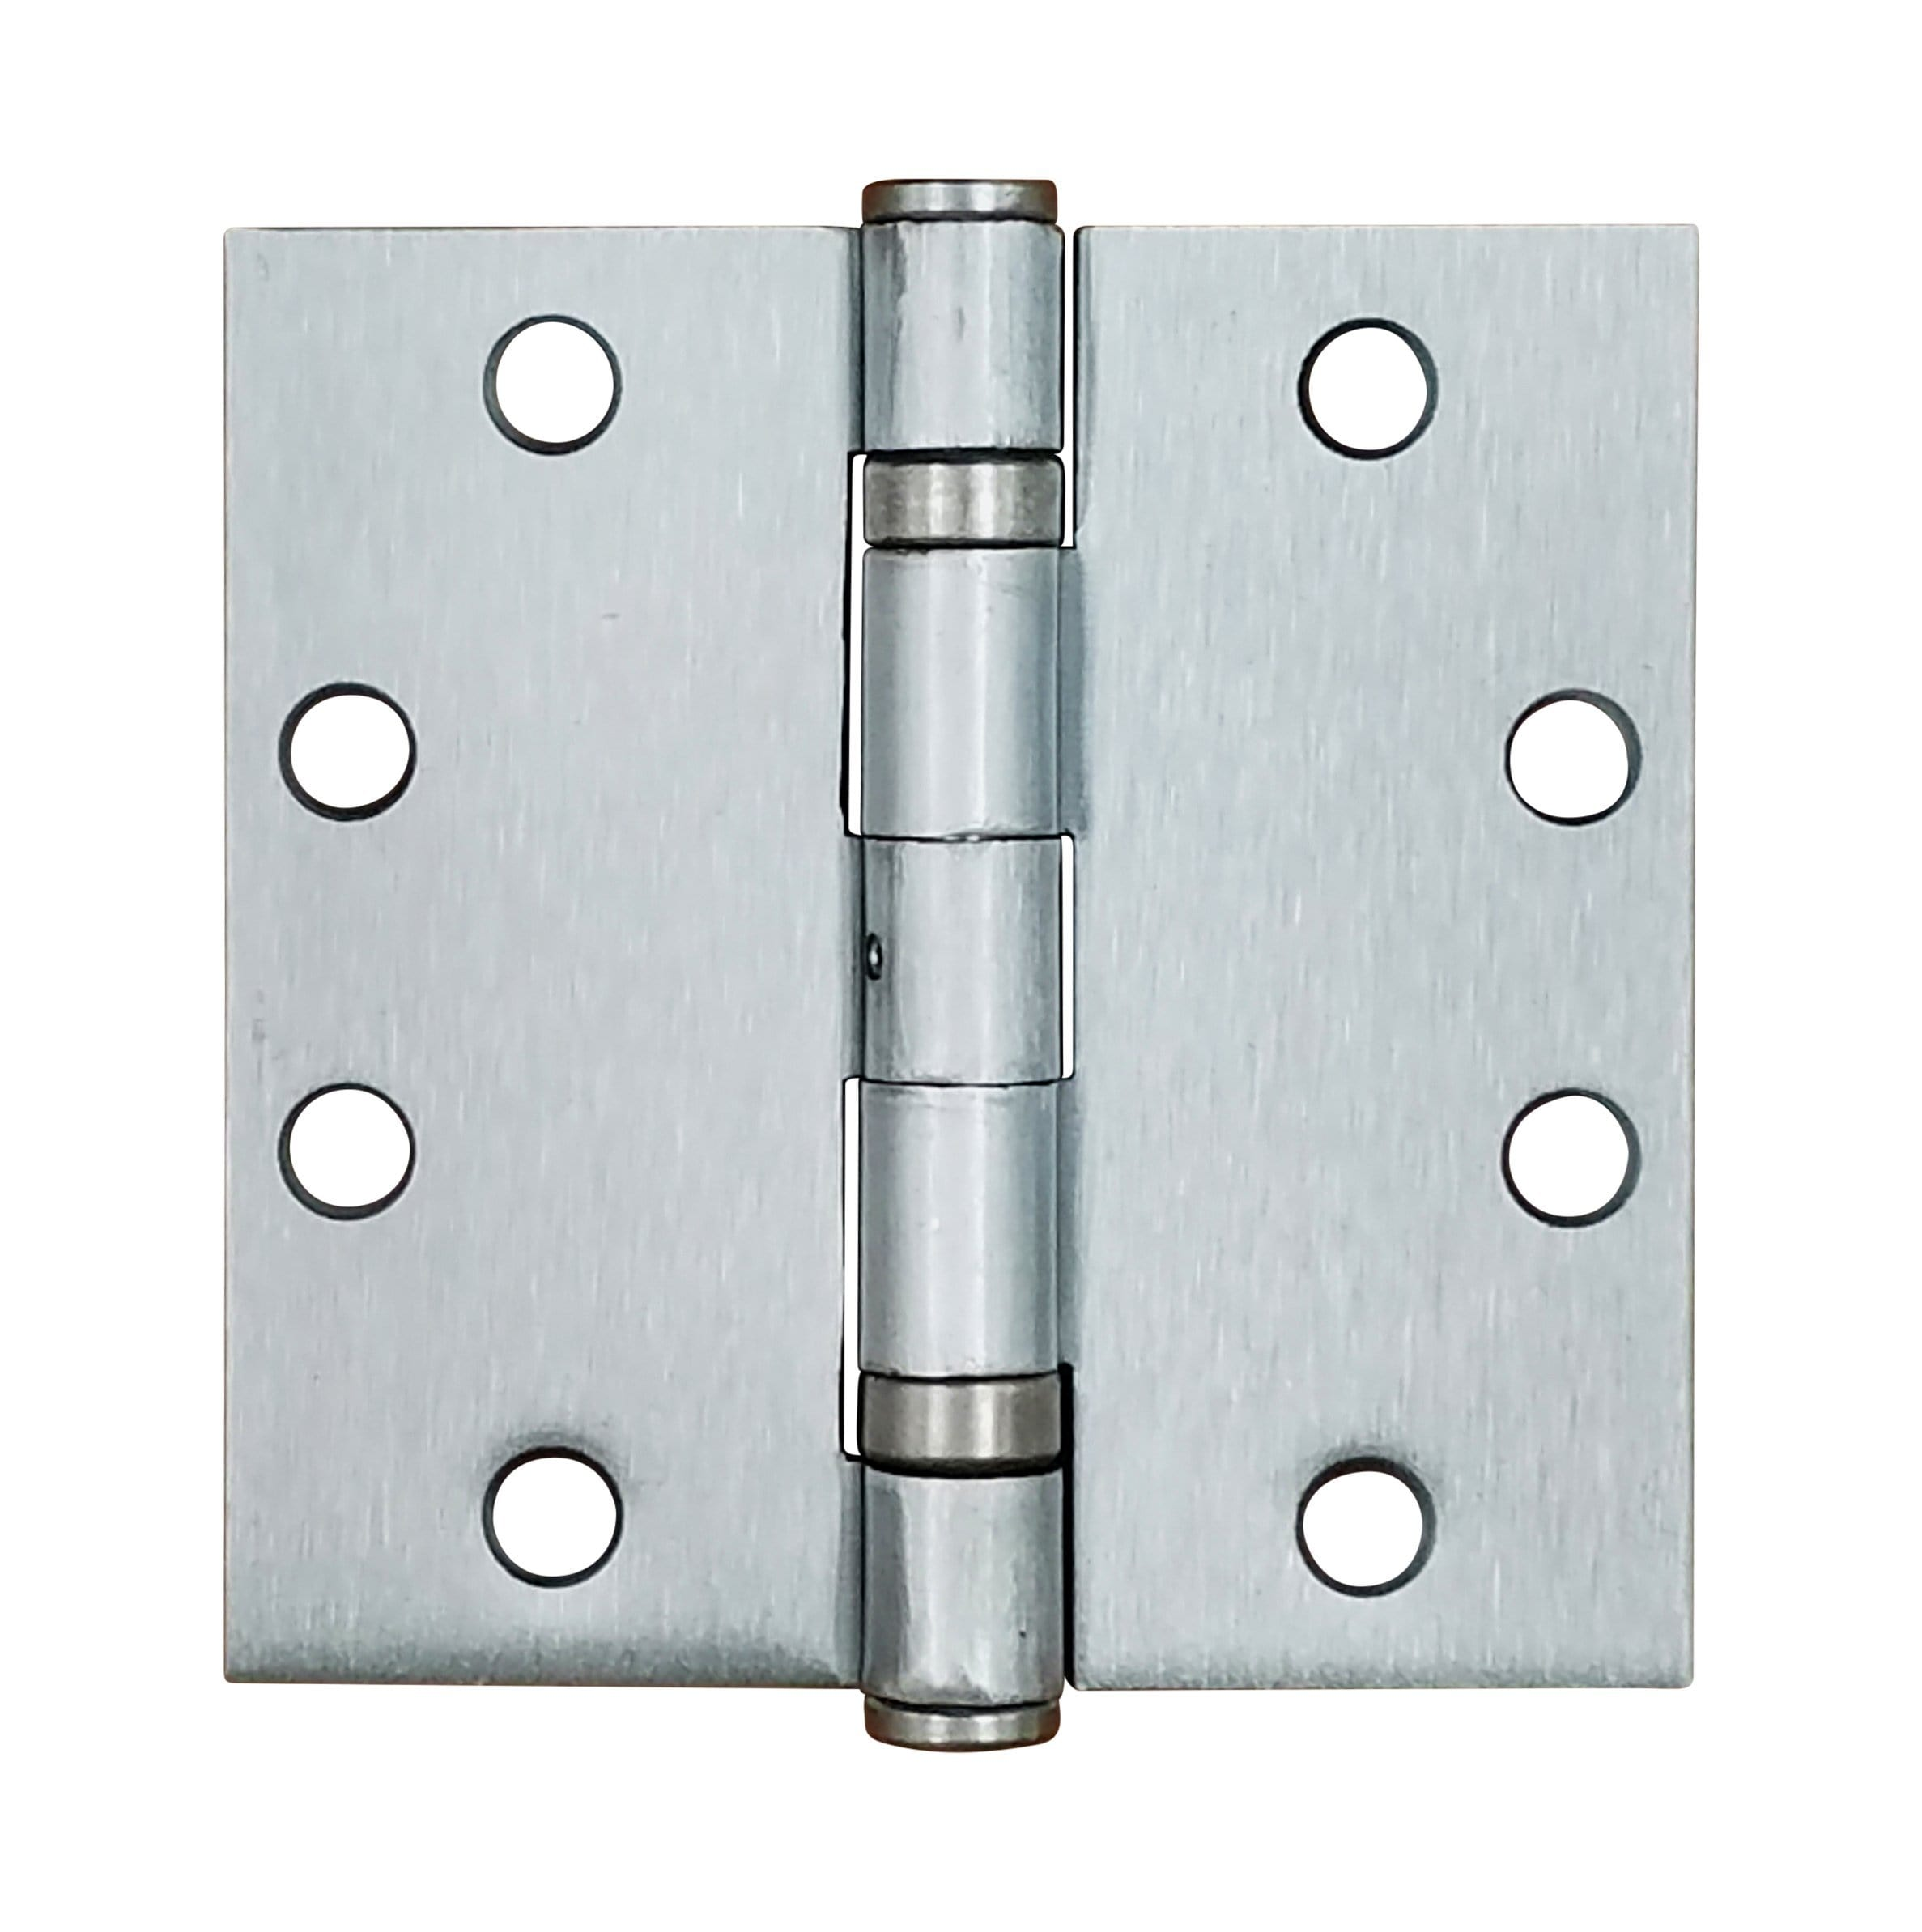 "4 1/2"" x 4 1/2"" with square corners Satin Nickel Commercial Ball Bearing Hinge- Sold in Pairs"